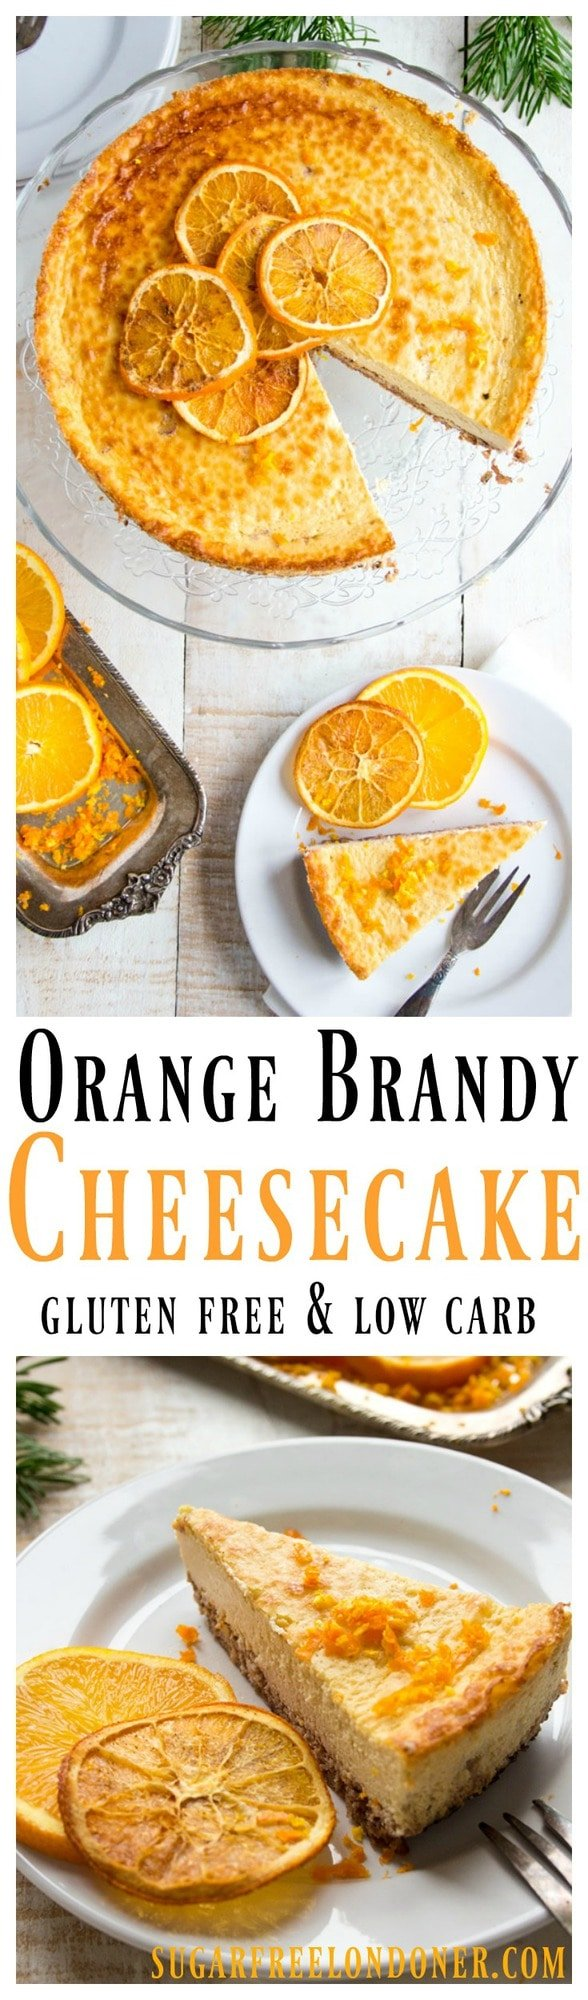 A showstopper cake to crown a festive meal or mark a special occasion: This spiced orange brandy cheesecake is sugar free, low carb and gluten free